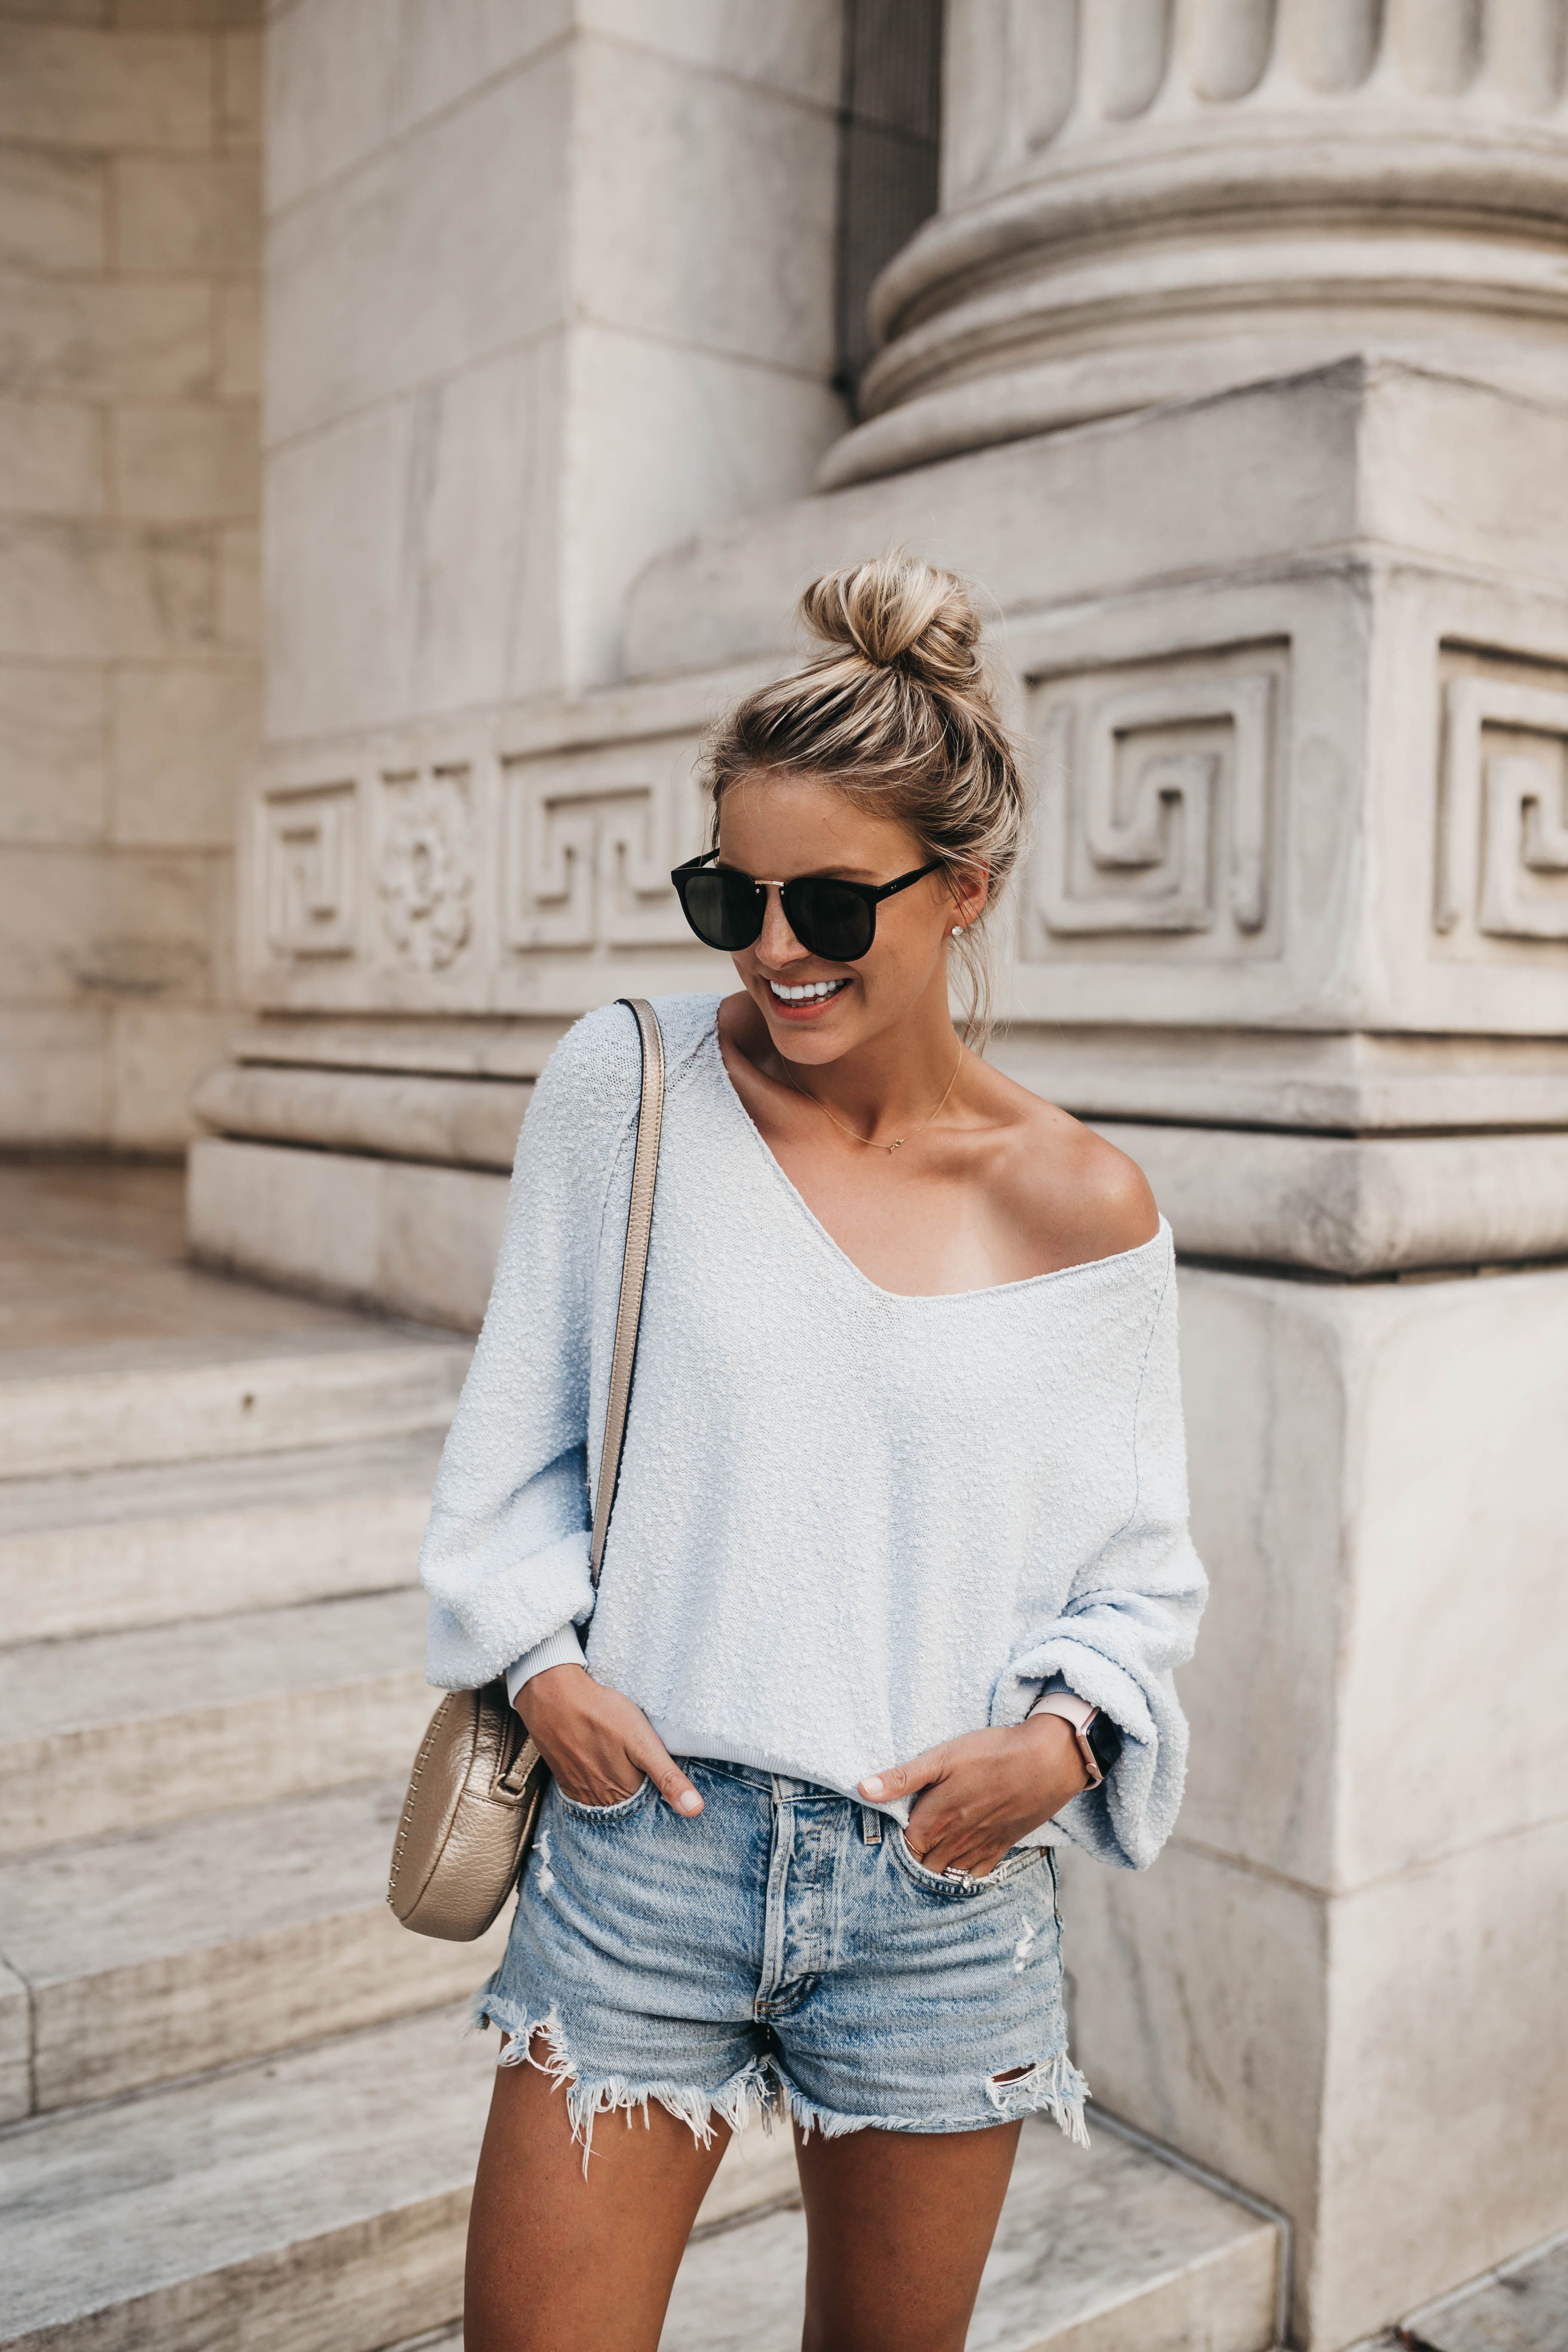 Everyday Casual Styled Snapshots Casual Summer Outfits Summer Style Casual Fashion Clothes Women